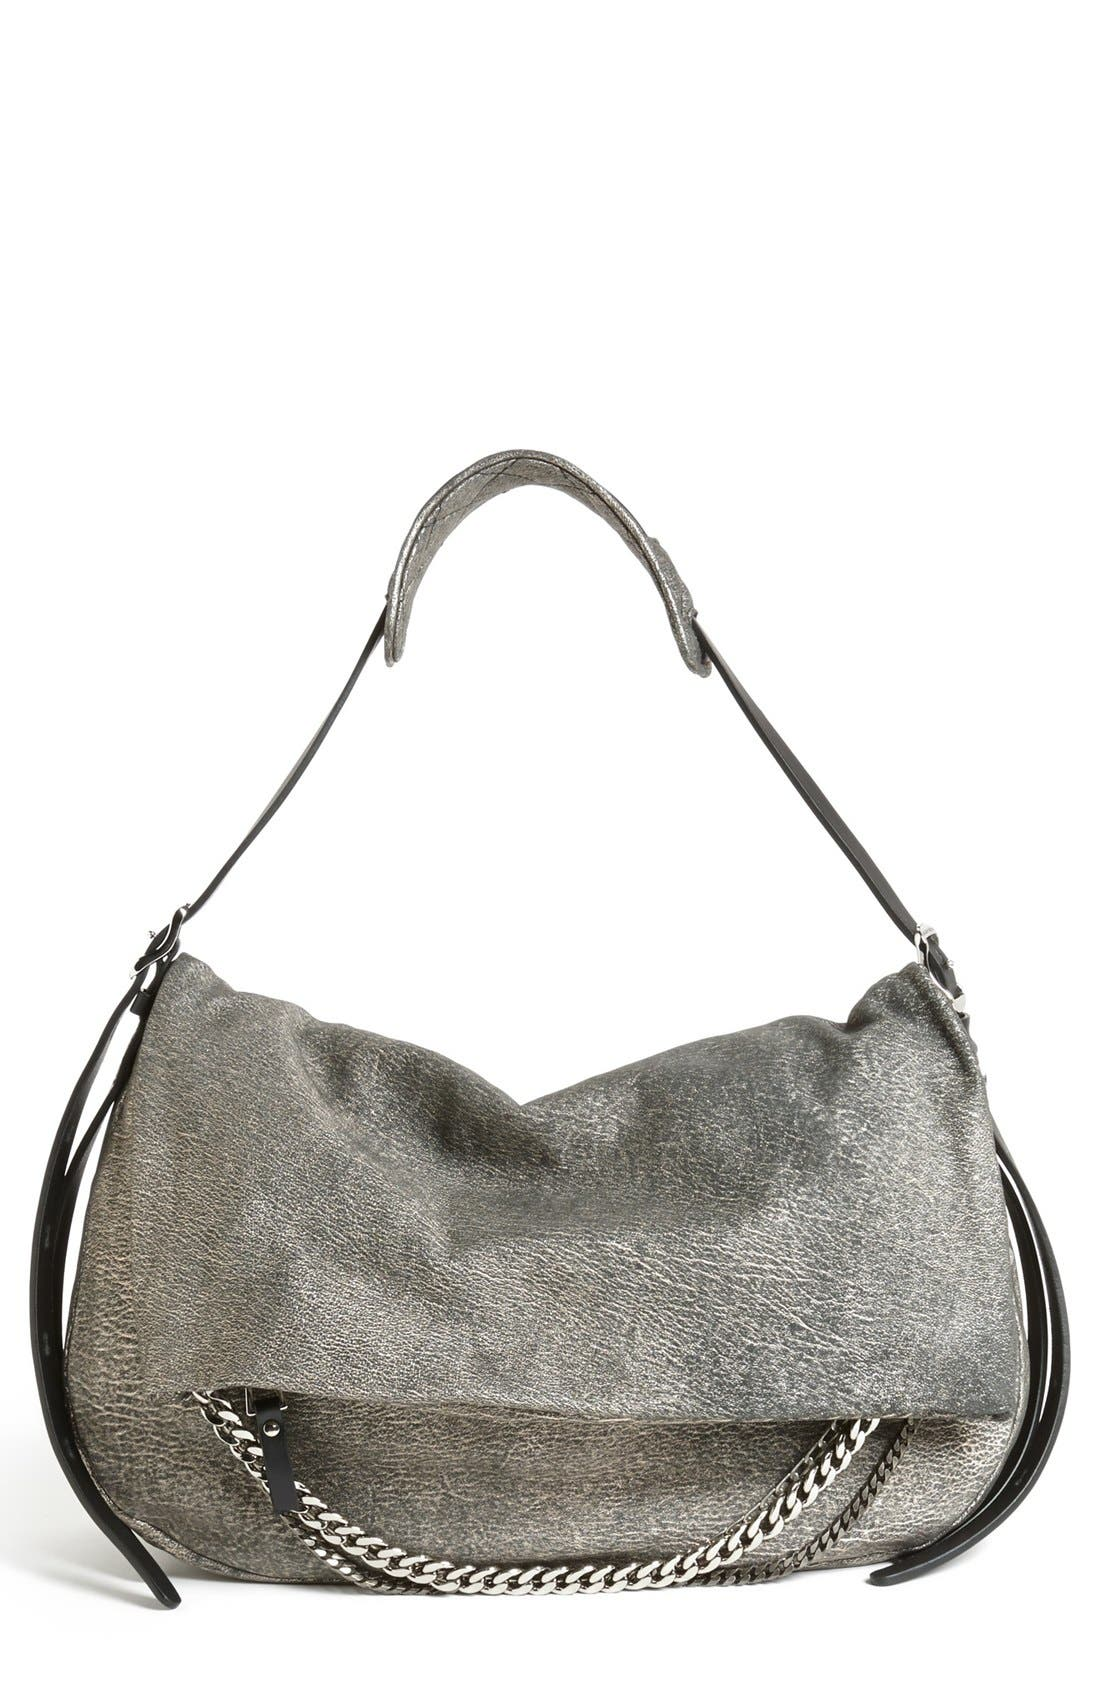 Alternate Image 1 Selected - Jimmy Choo 'Biker - Large' Metallic Suede Shoulder Bag